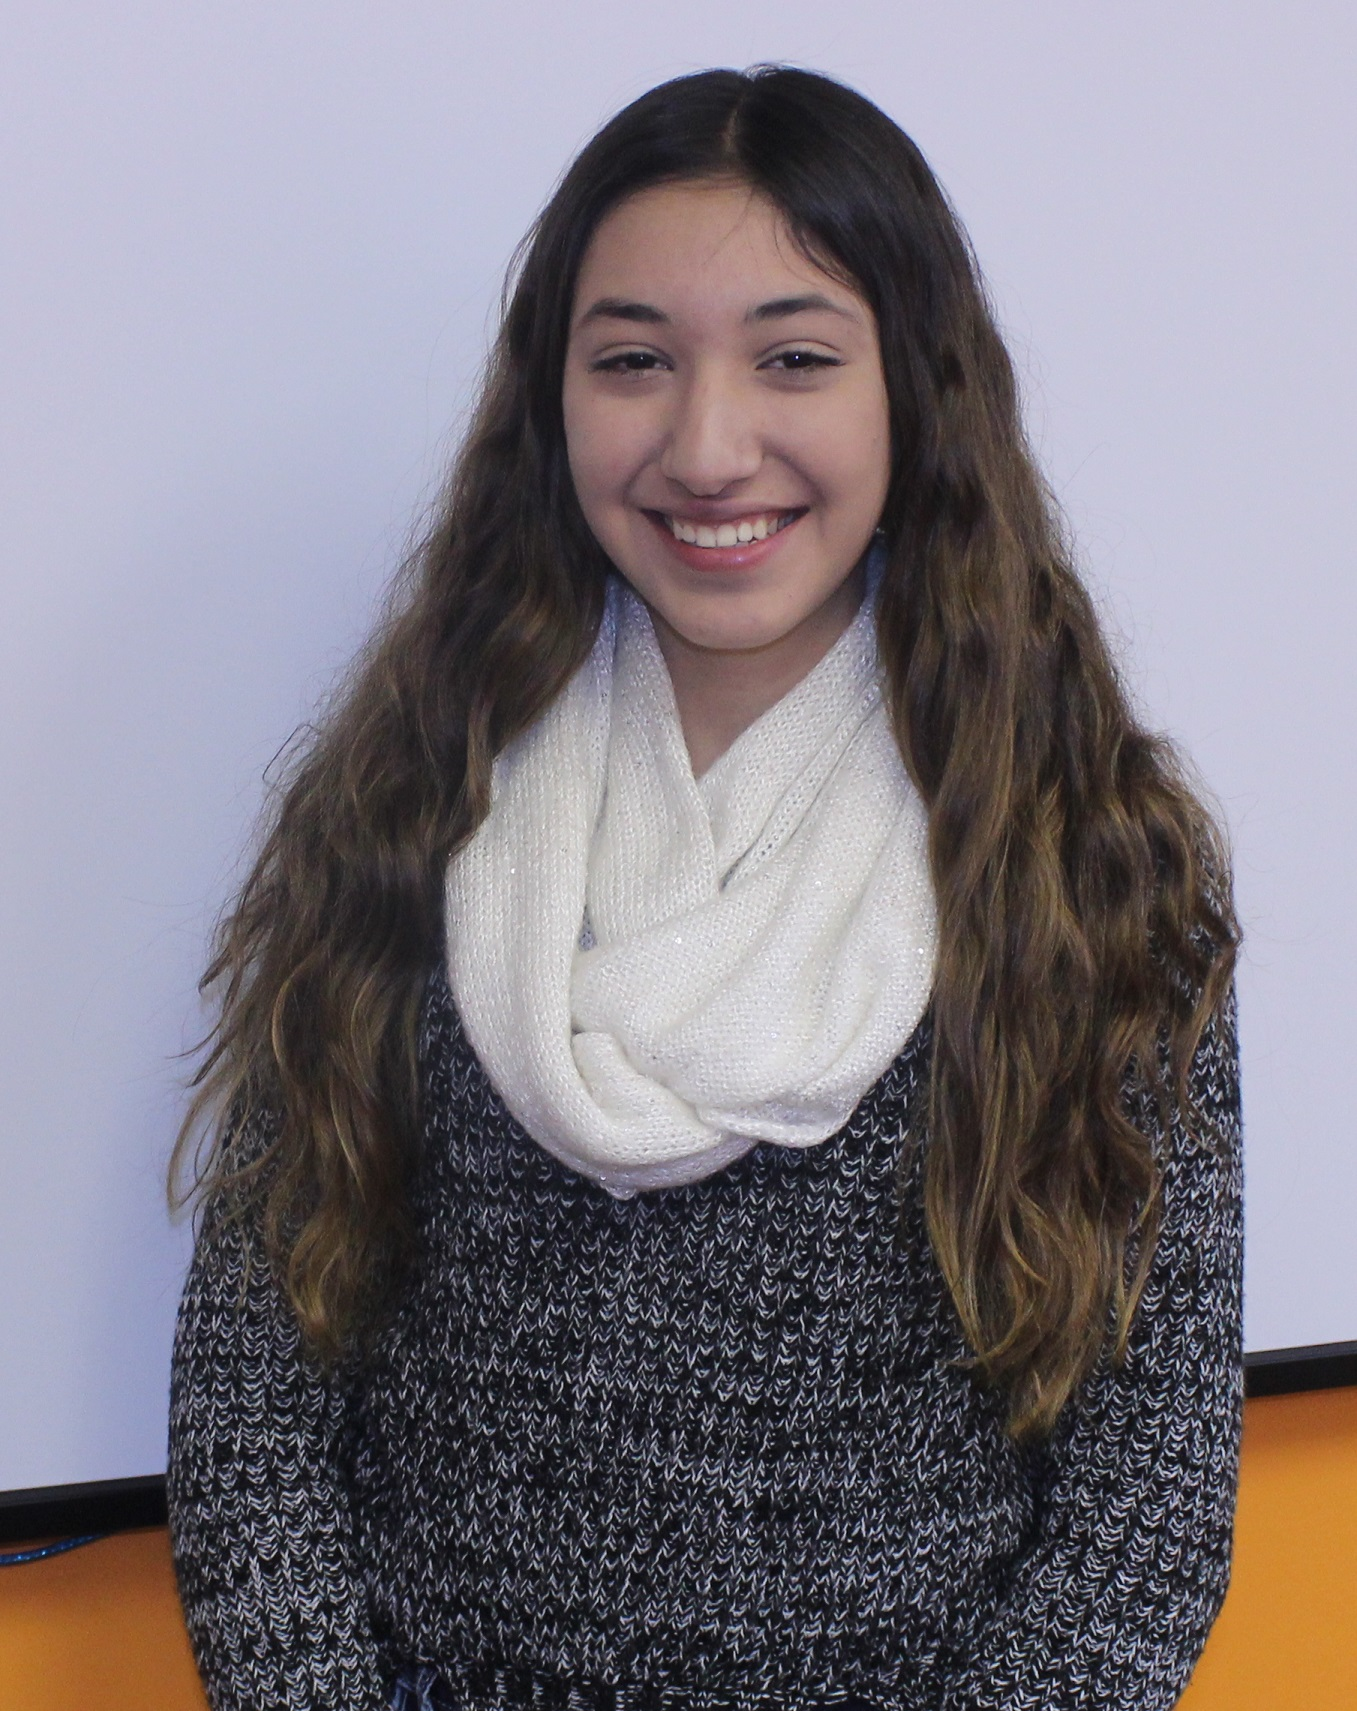 Andrea Rady from Mexico is studying English at EC Montreal, Canada